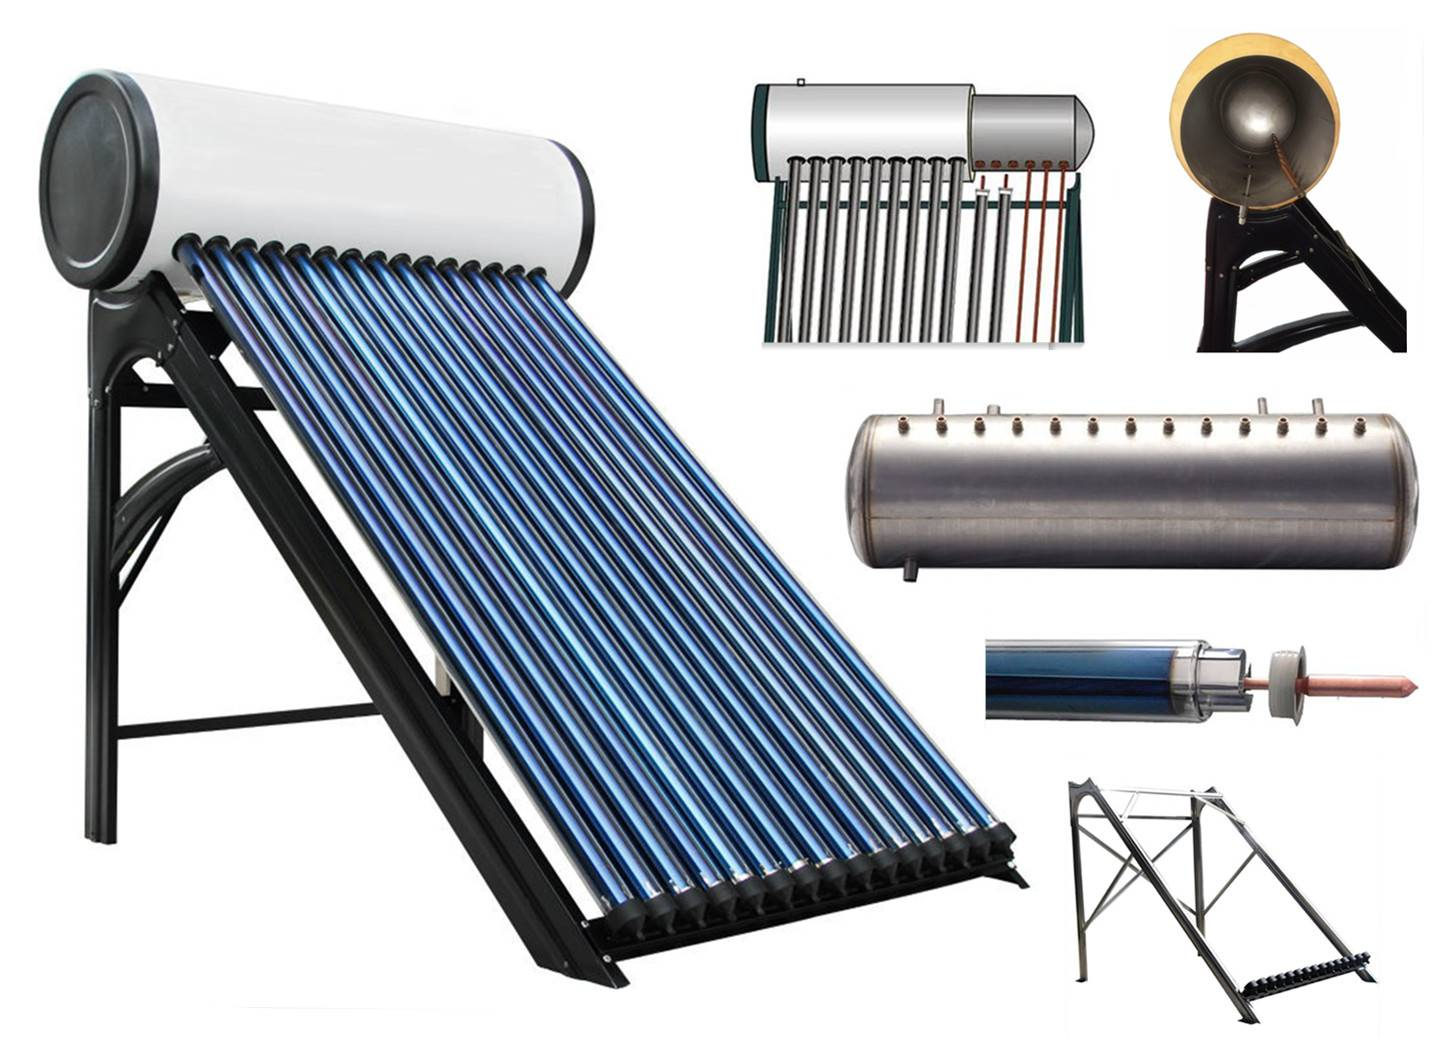 High Pressure Solar Hot Water Heater, Pressurized Stainless Steel Solar Hot Water Heaters (Heat Pipe